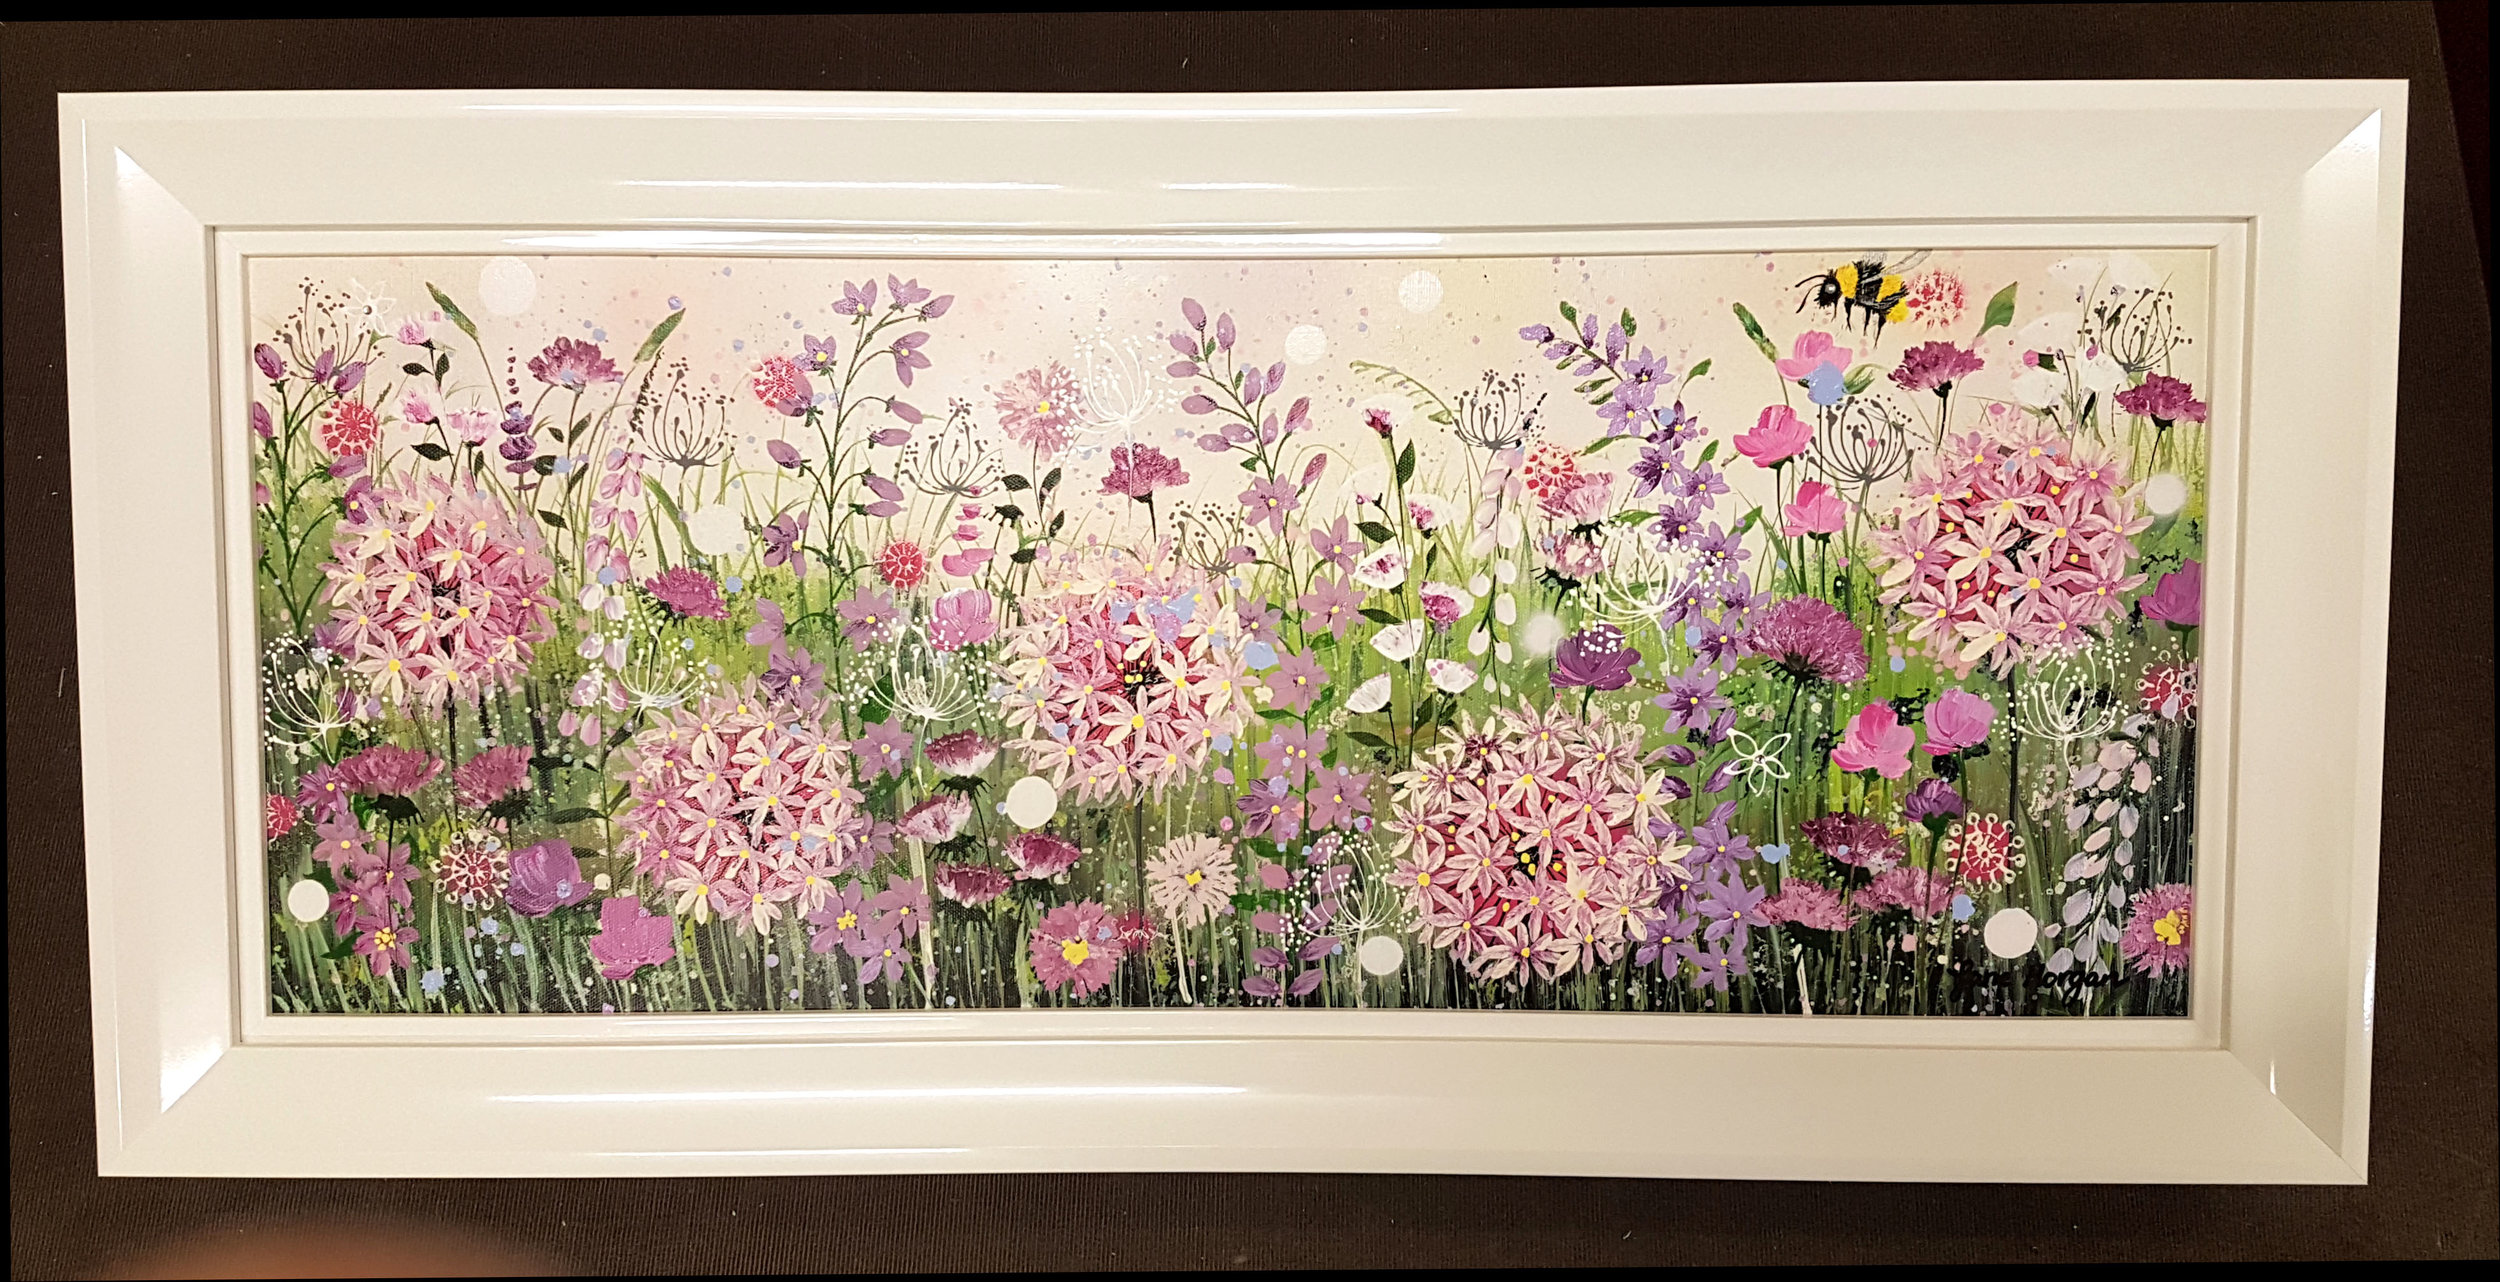 A stretched canvas by artist Jane Morgan framed in a large white high gloss frame with an inner gloss laquered slip moulding for added depth.